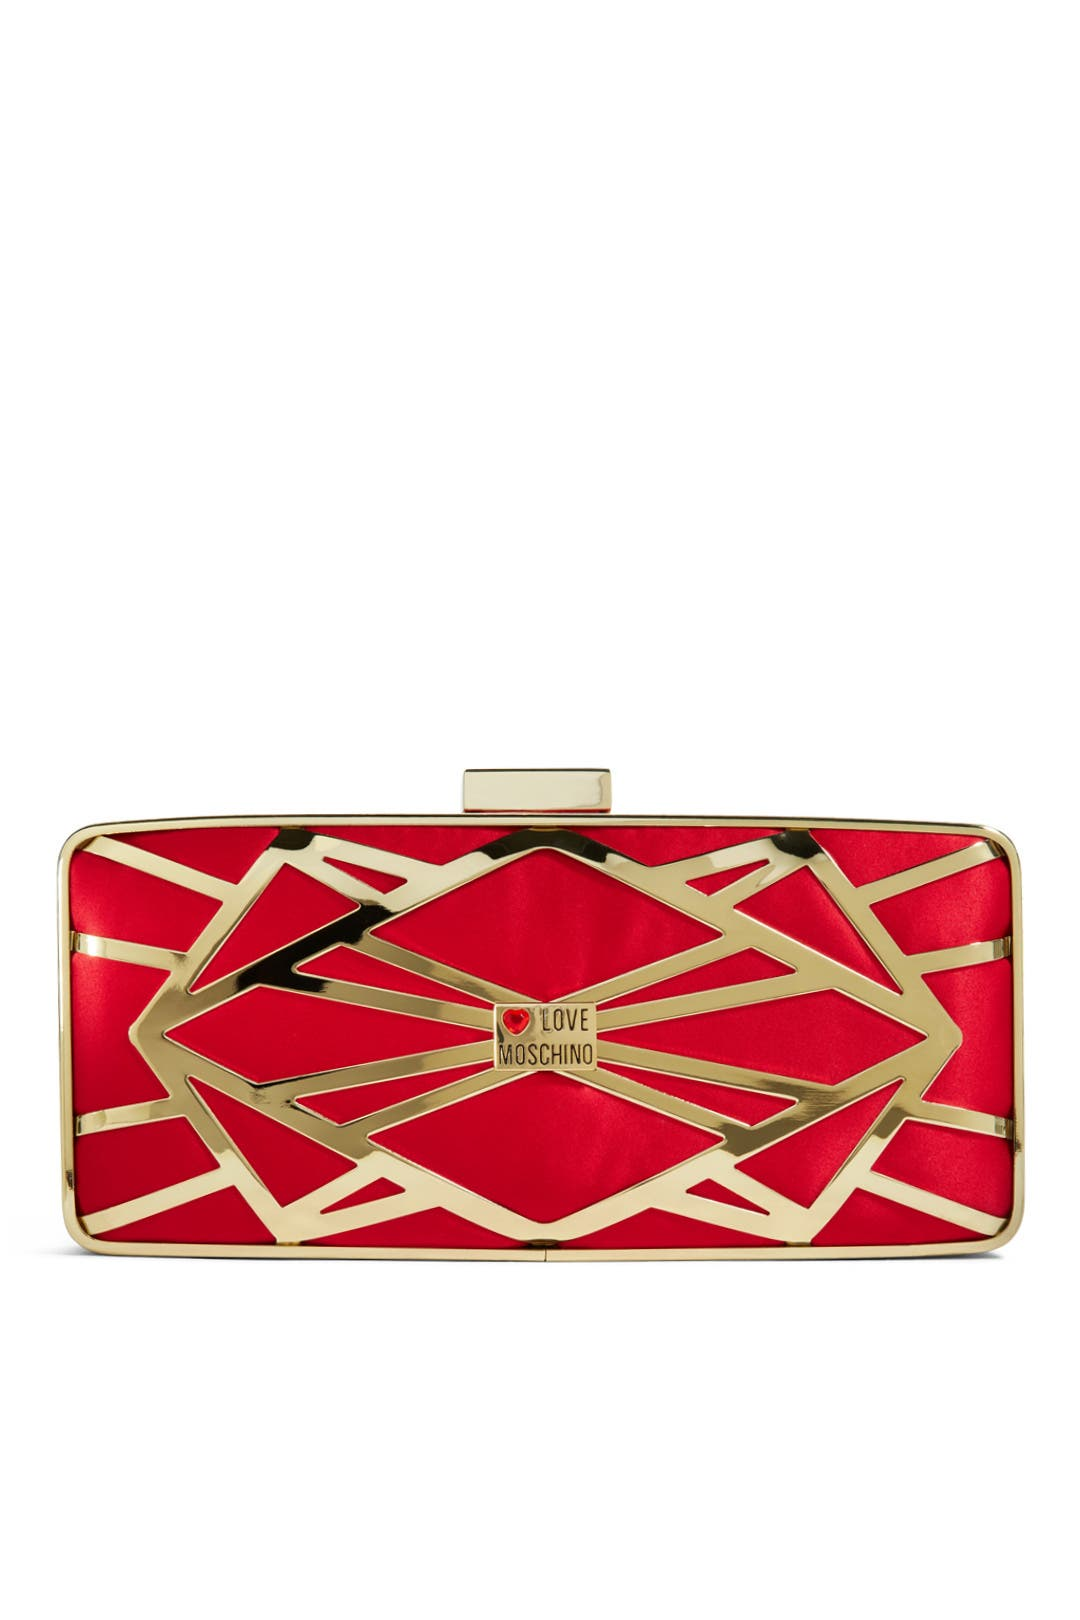 Fracture Clutch by Love Moschino Accessories